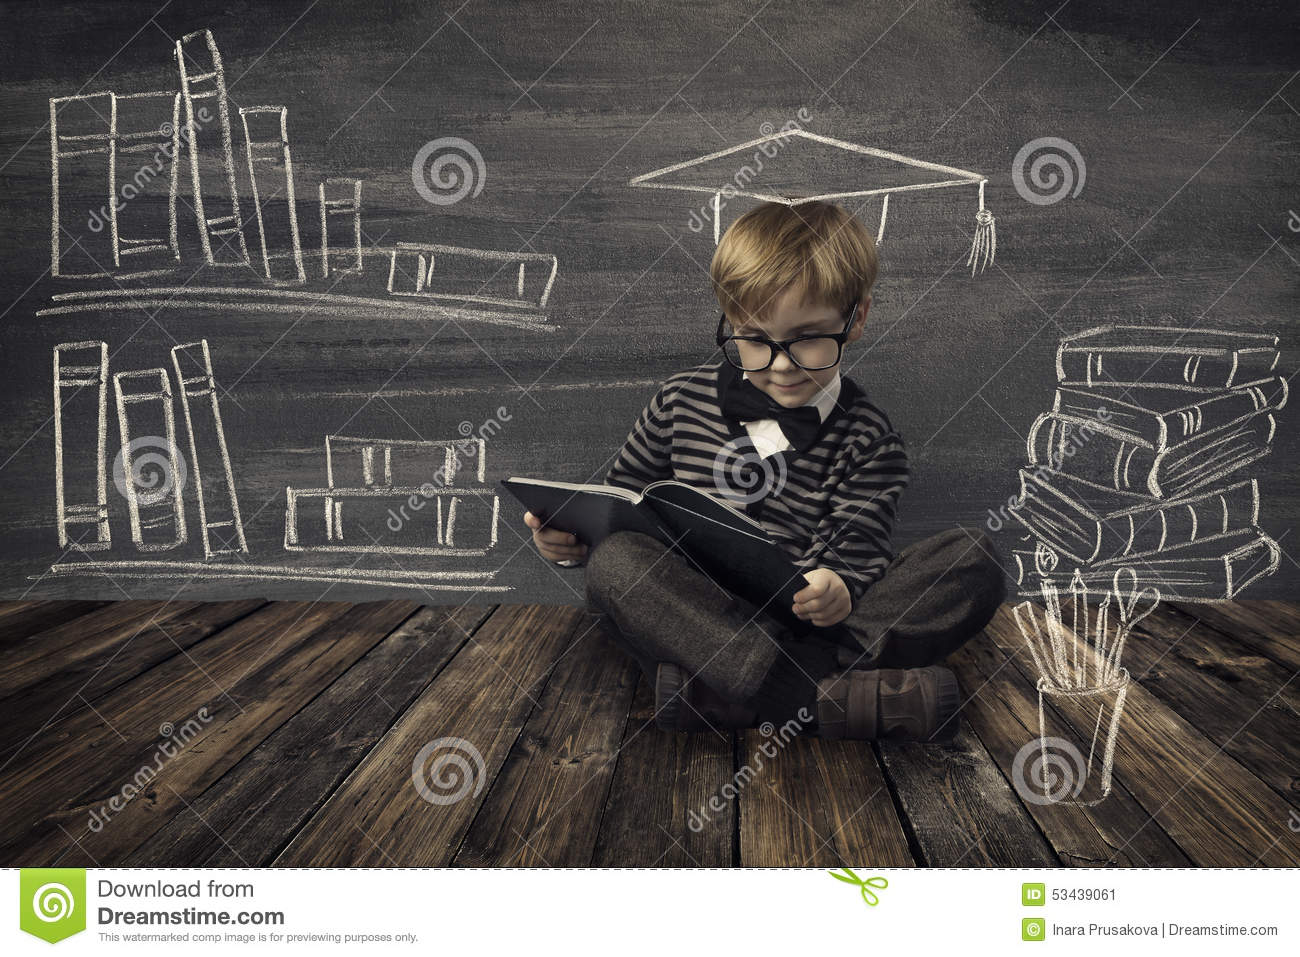 Child Little Boy in Glasses Reading Book over School Black Board